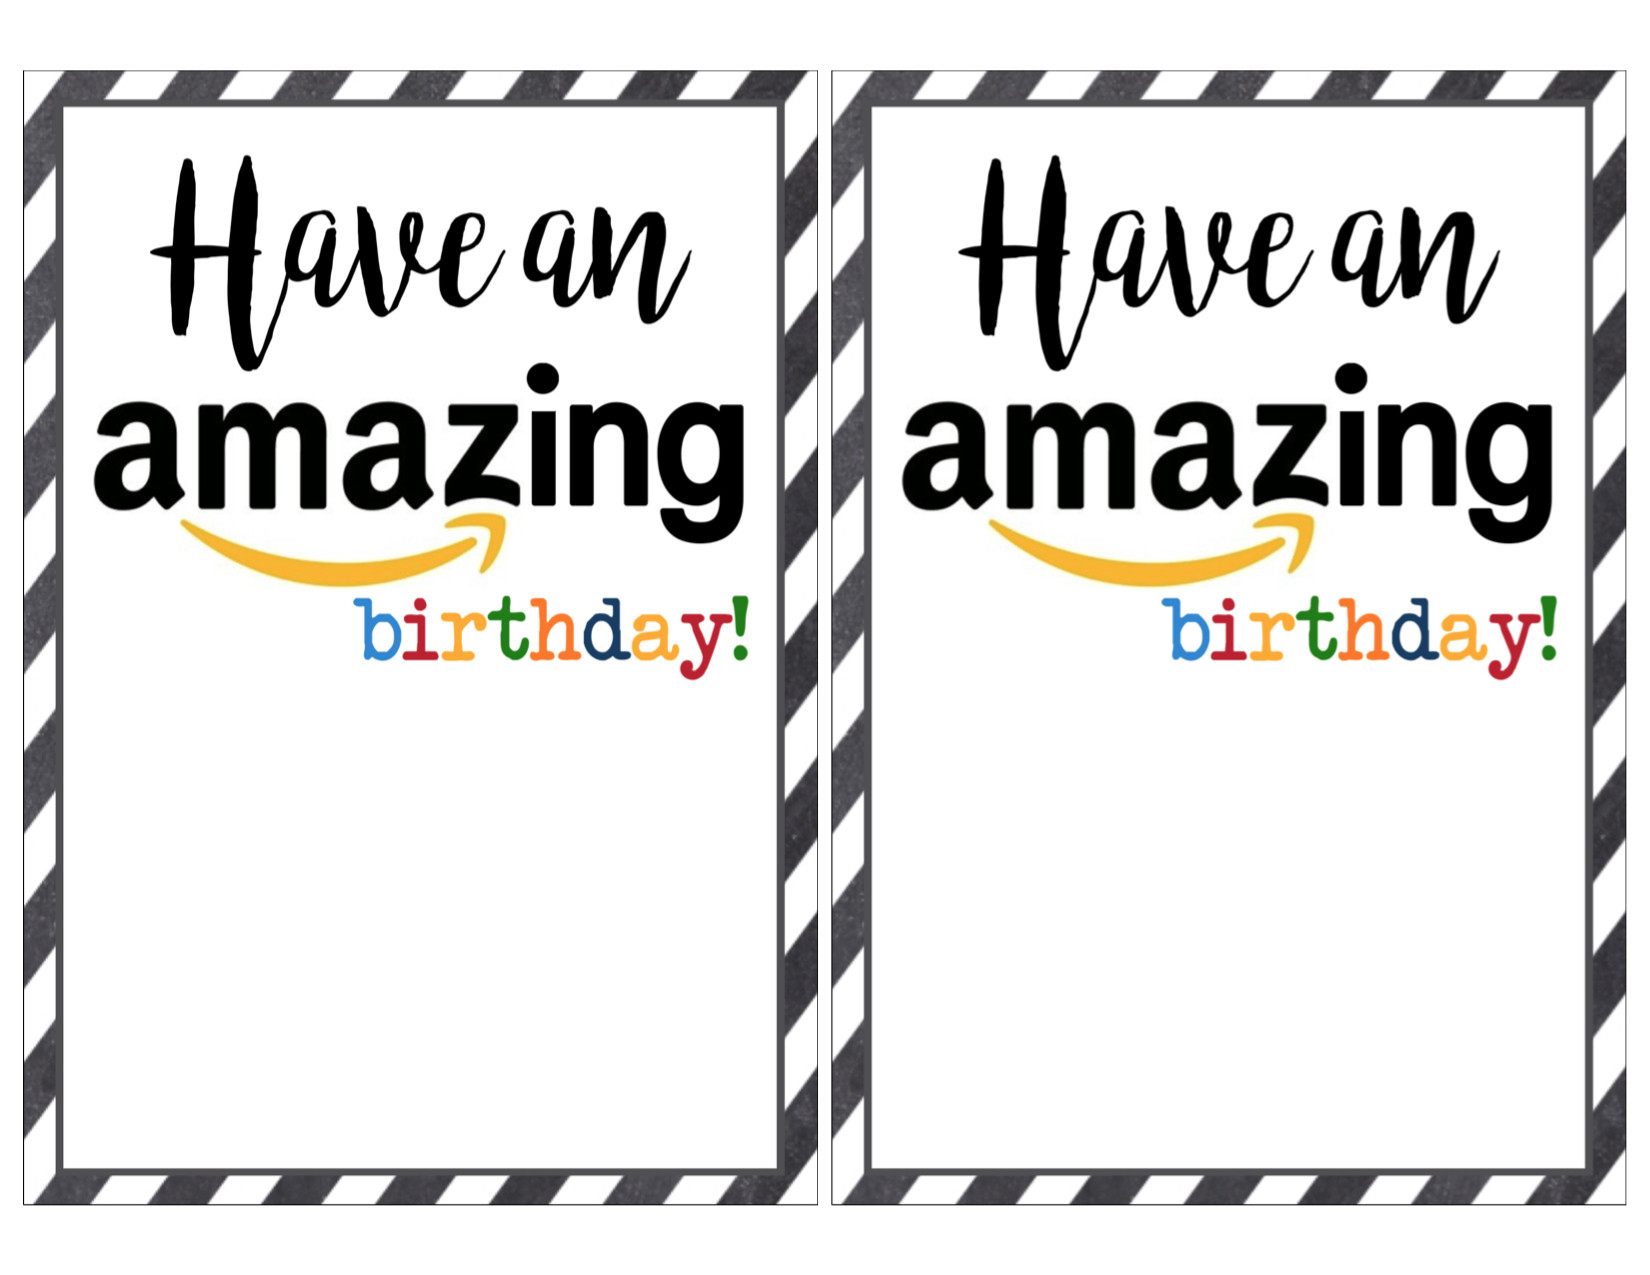 photo regarding Amazon Gift Card Printable known as Easiest 20 Amazon Birthday Present Card - Most straightforward Collections At any time